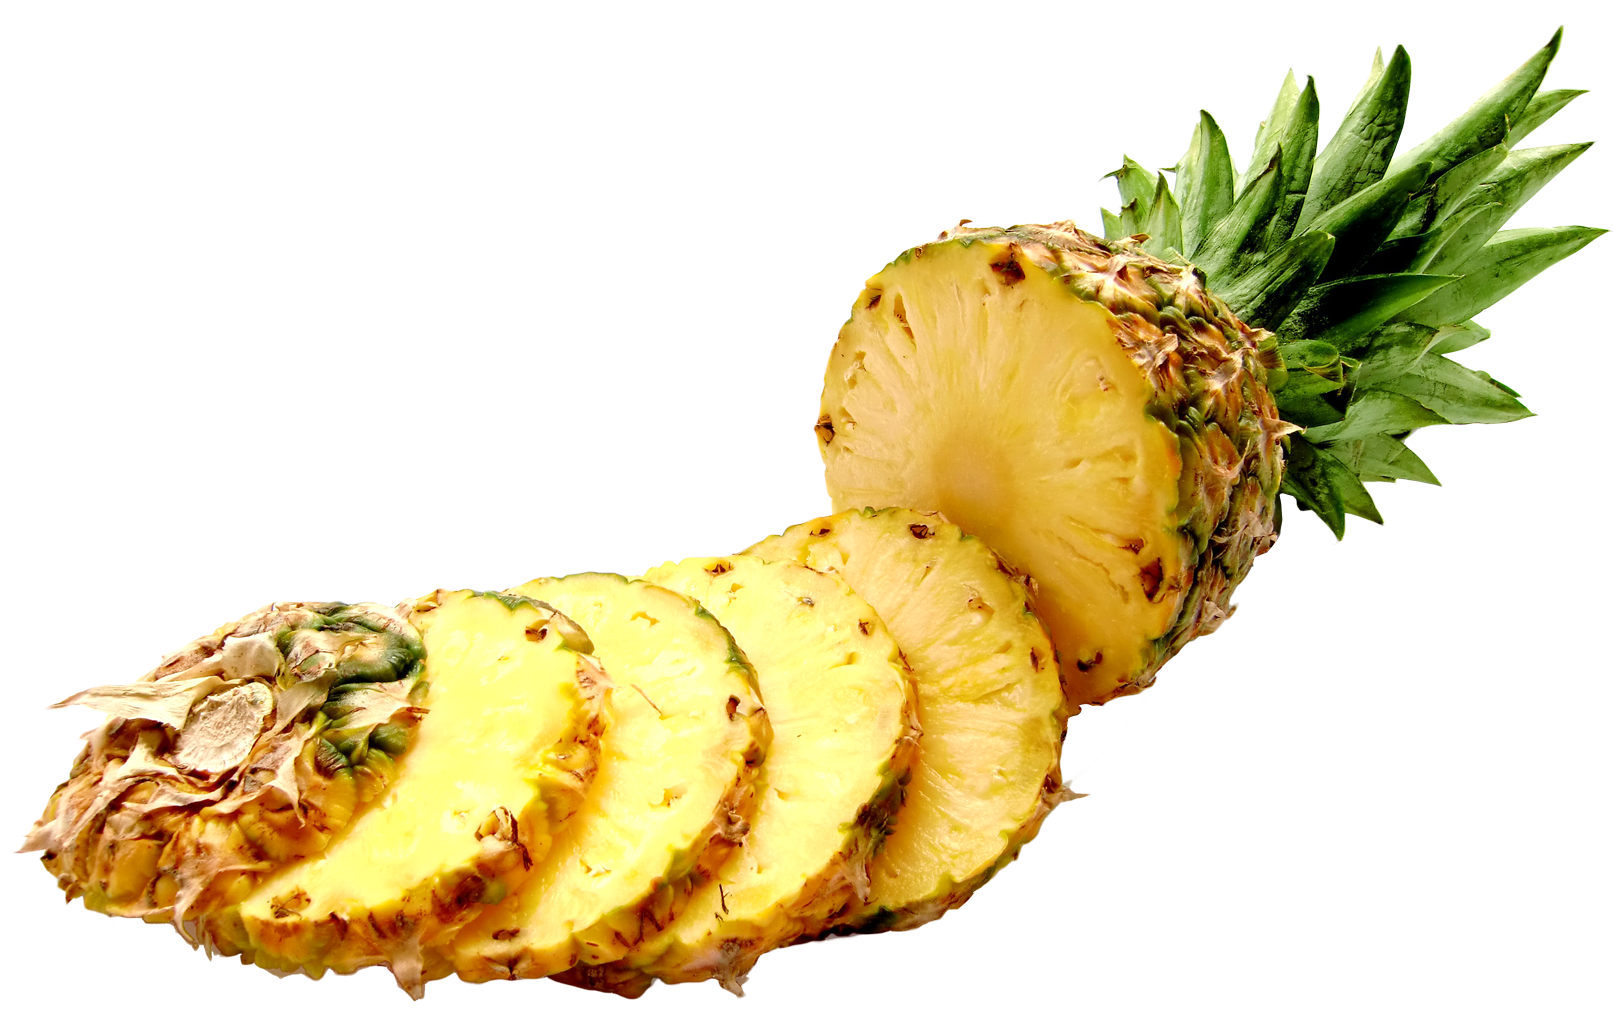 Pineapple slices PNG Image.